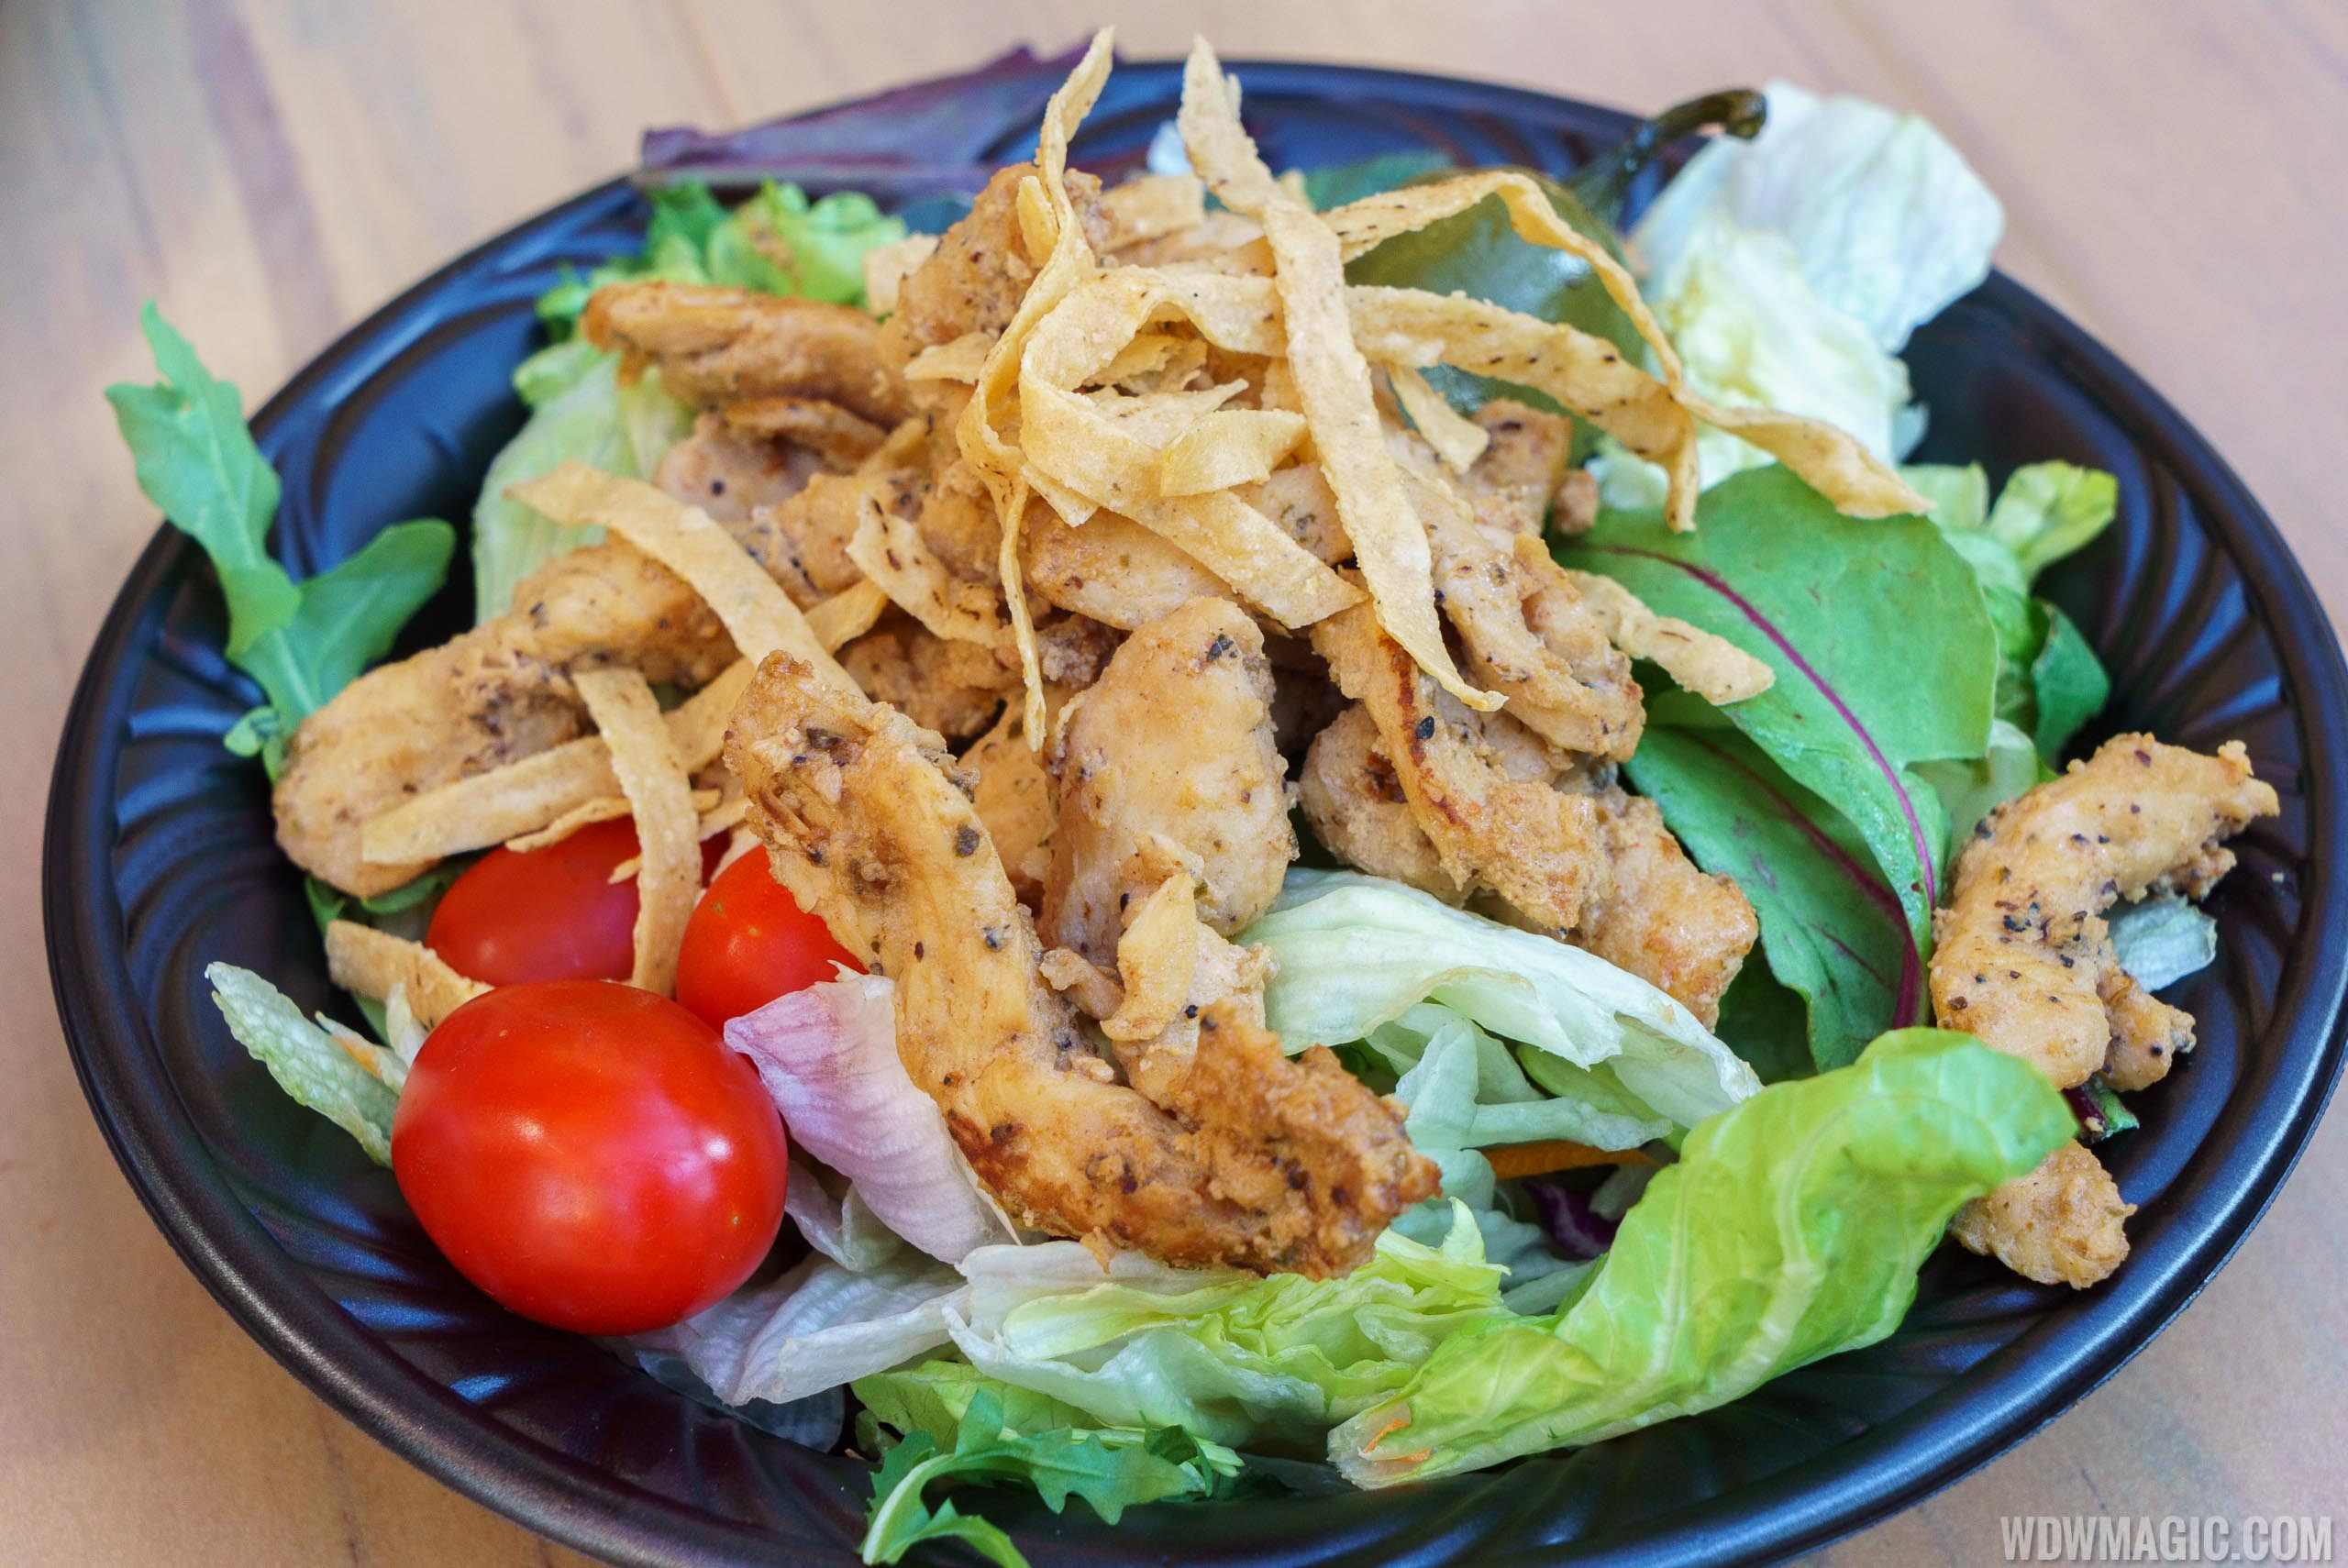 Pecos Bill Cafe - Southwest Salad with Chicken